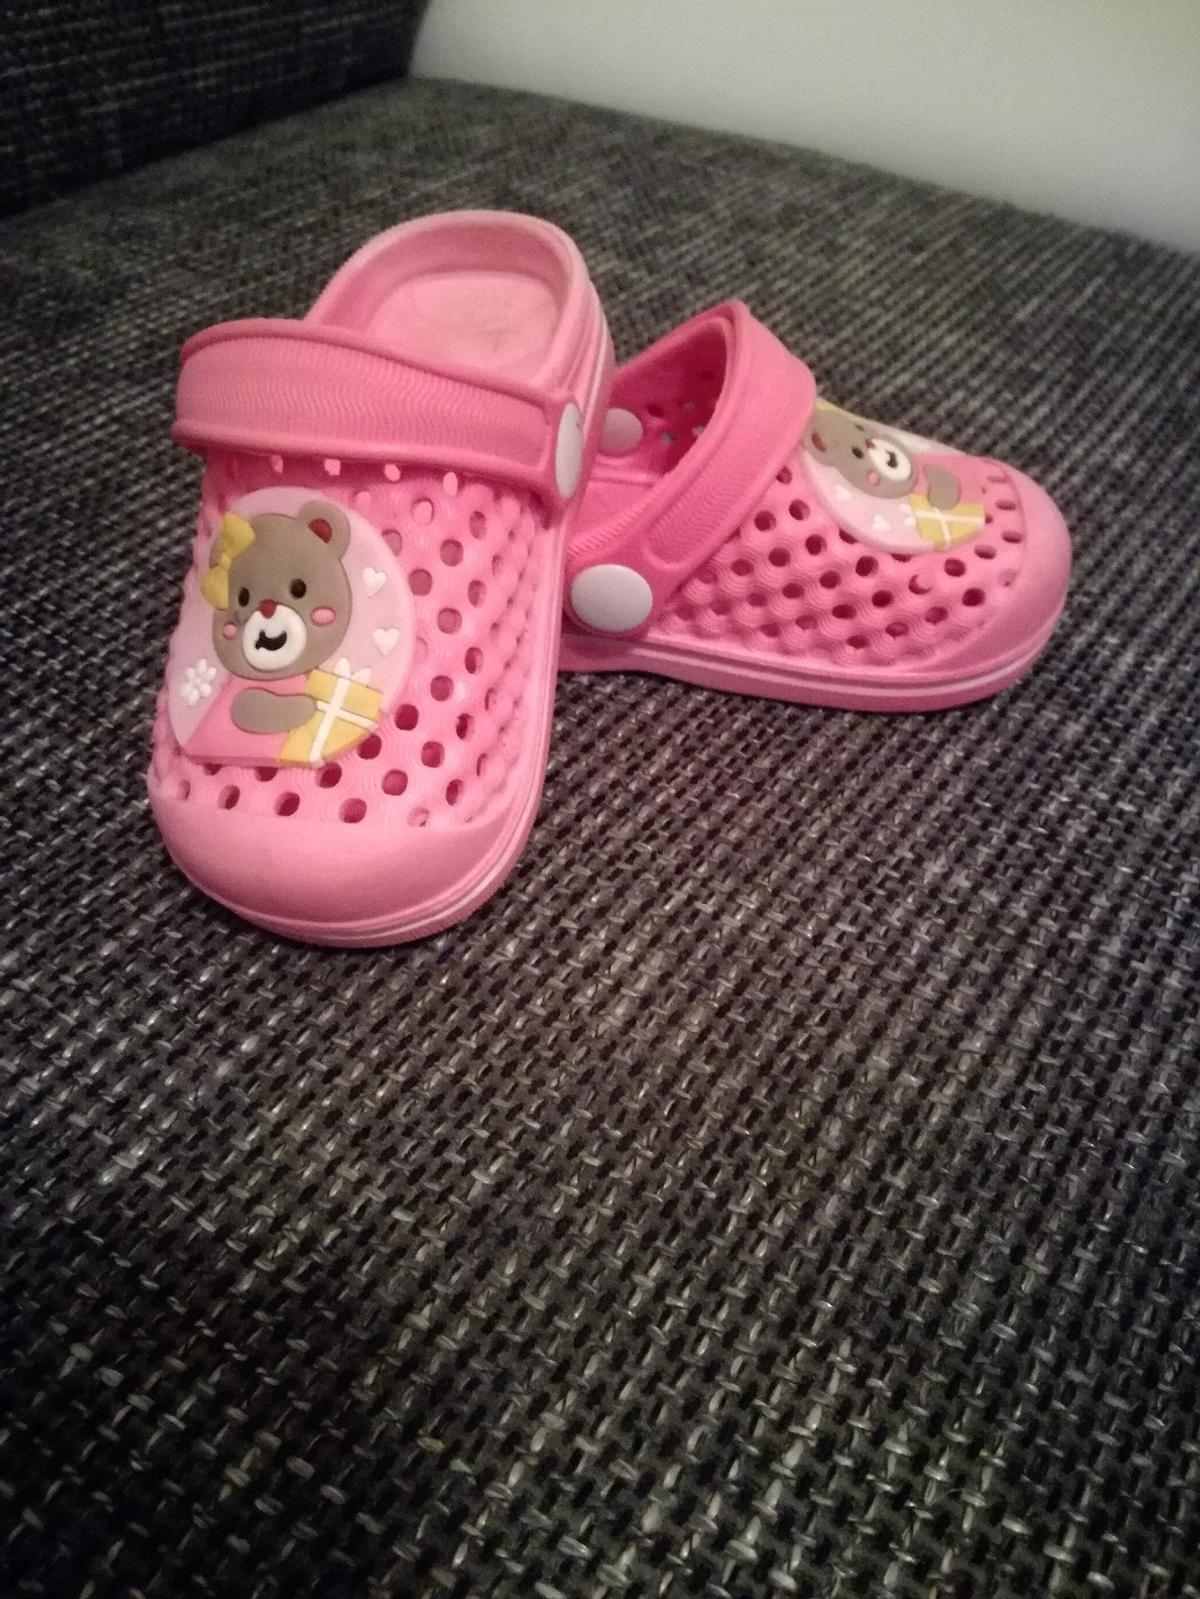 reputable site b2532 2cf5c Kinder Crocs Grösse 23